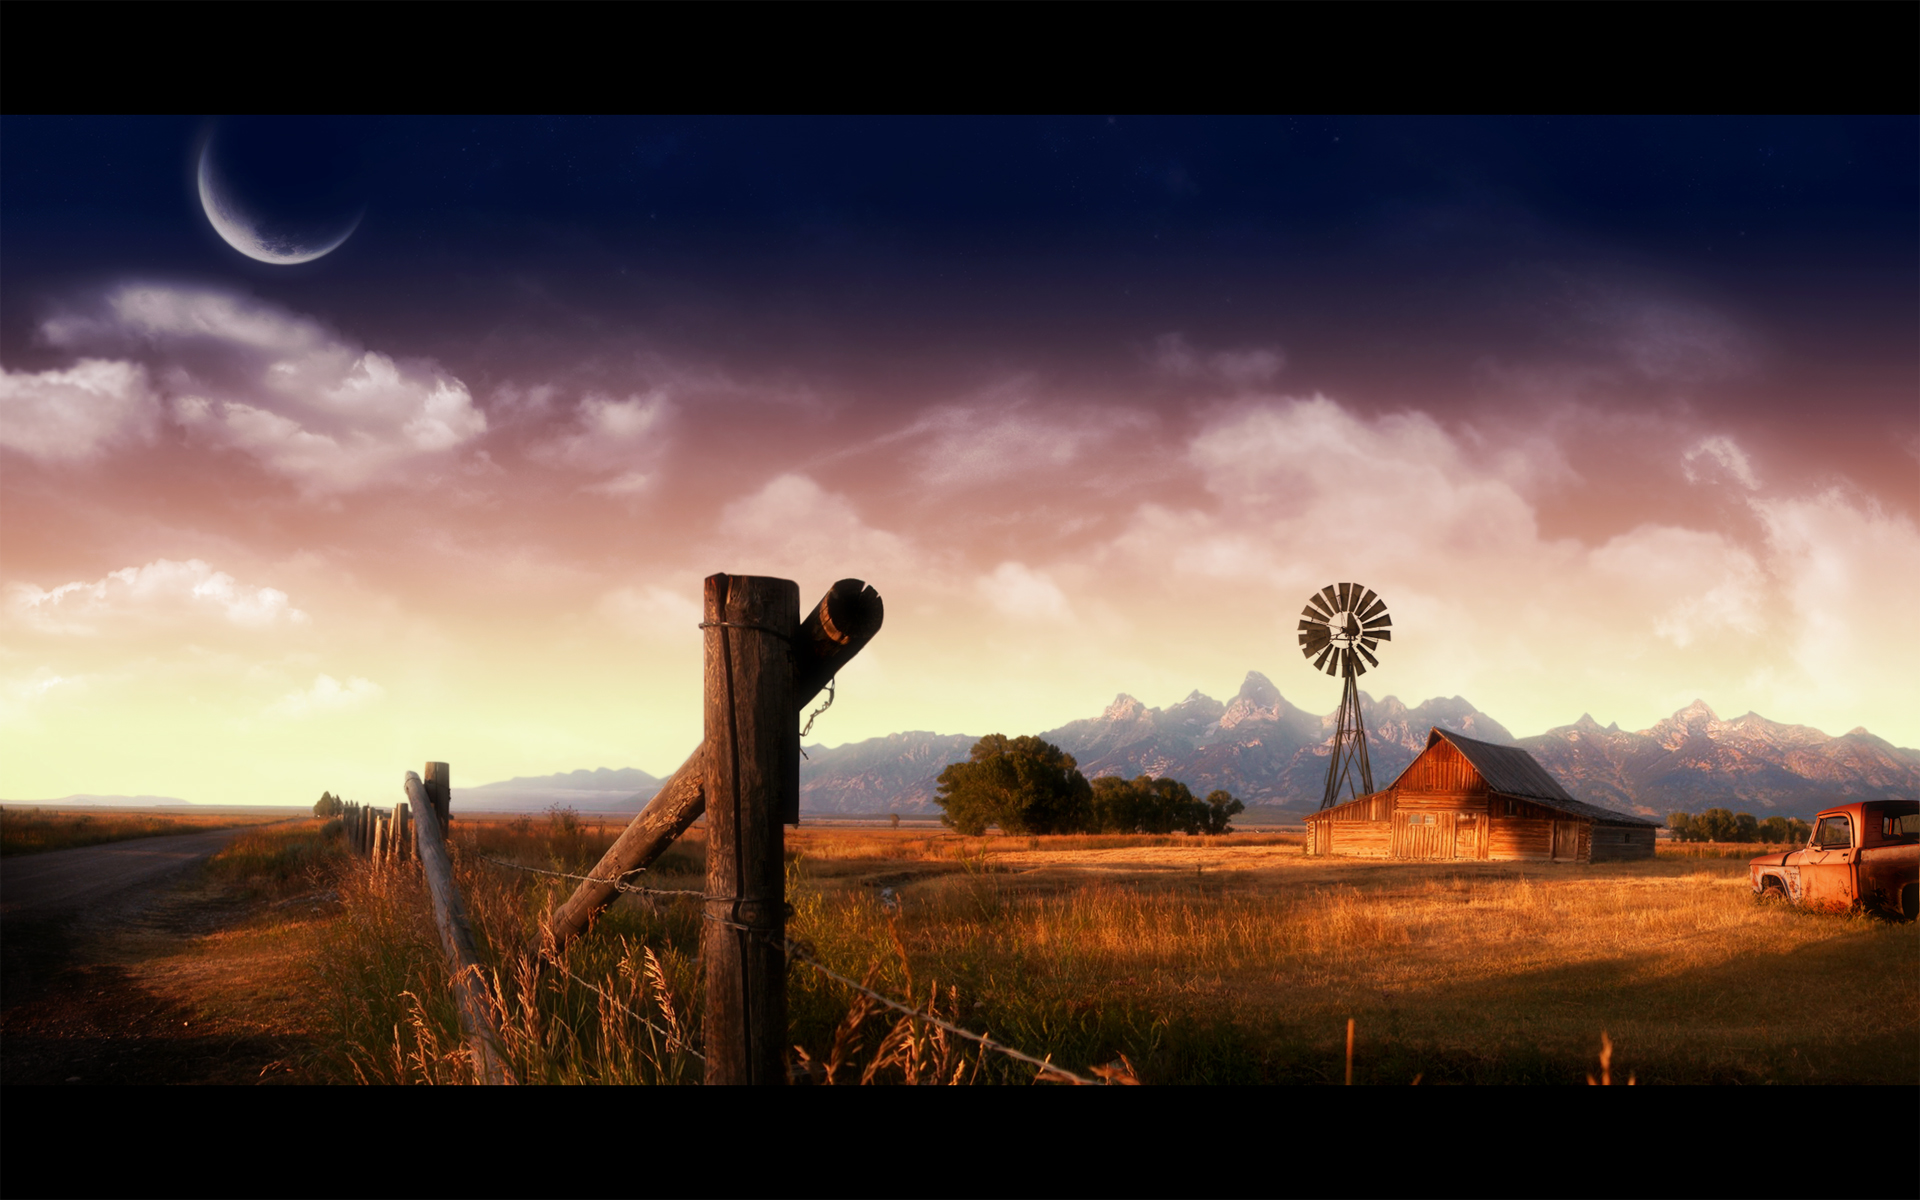 Country girl wallpapers for desktop wallpapersafari - Gir desktop wallpaper ...